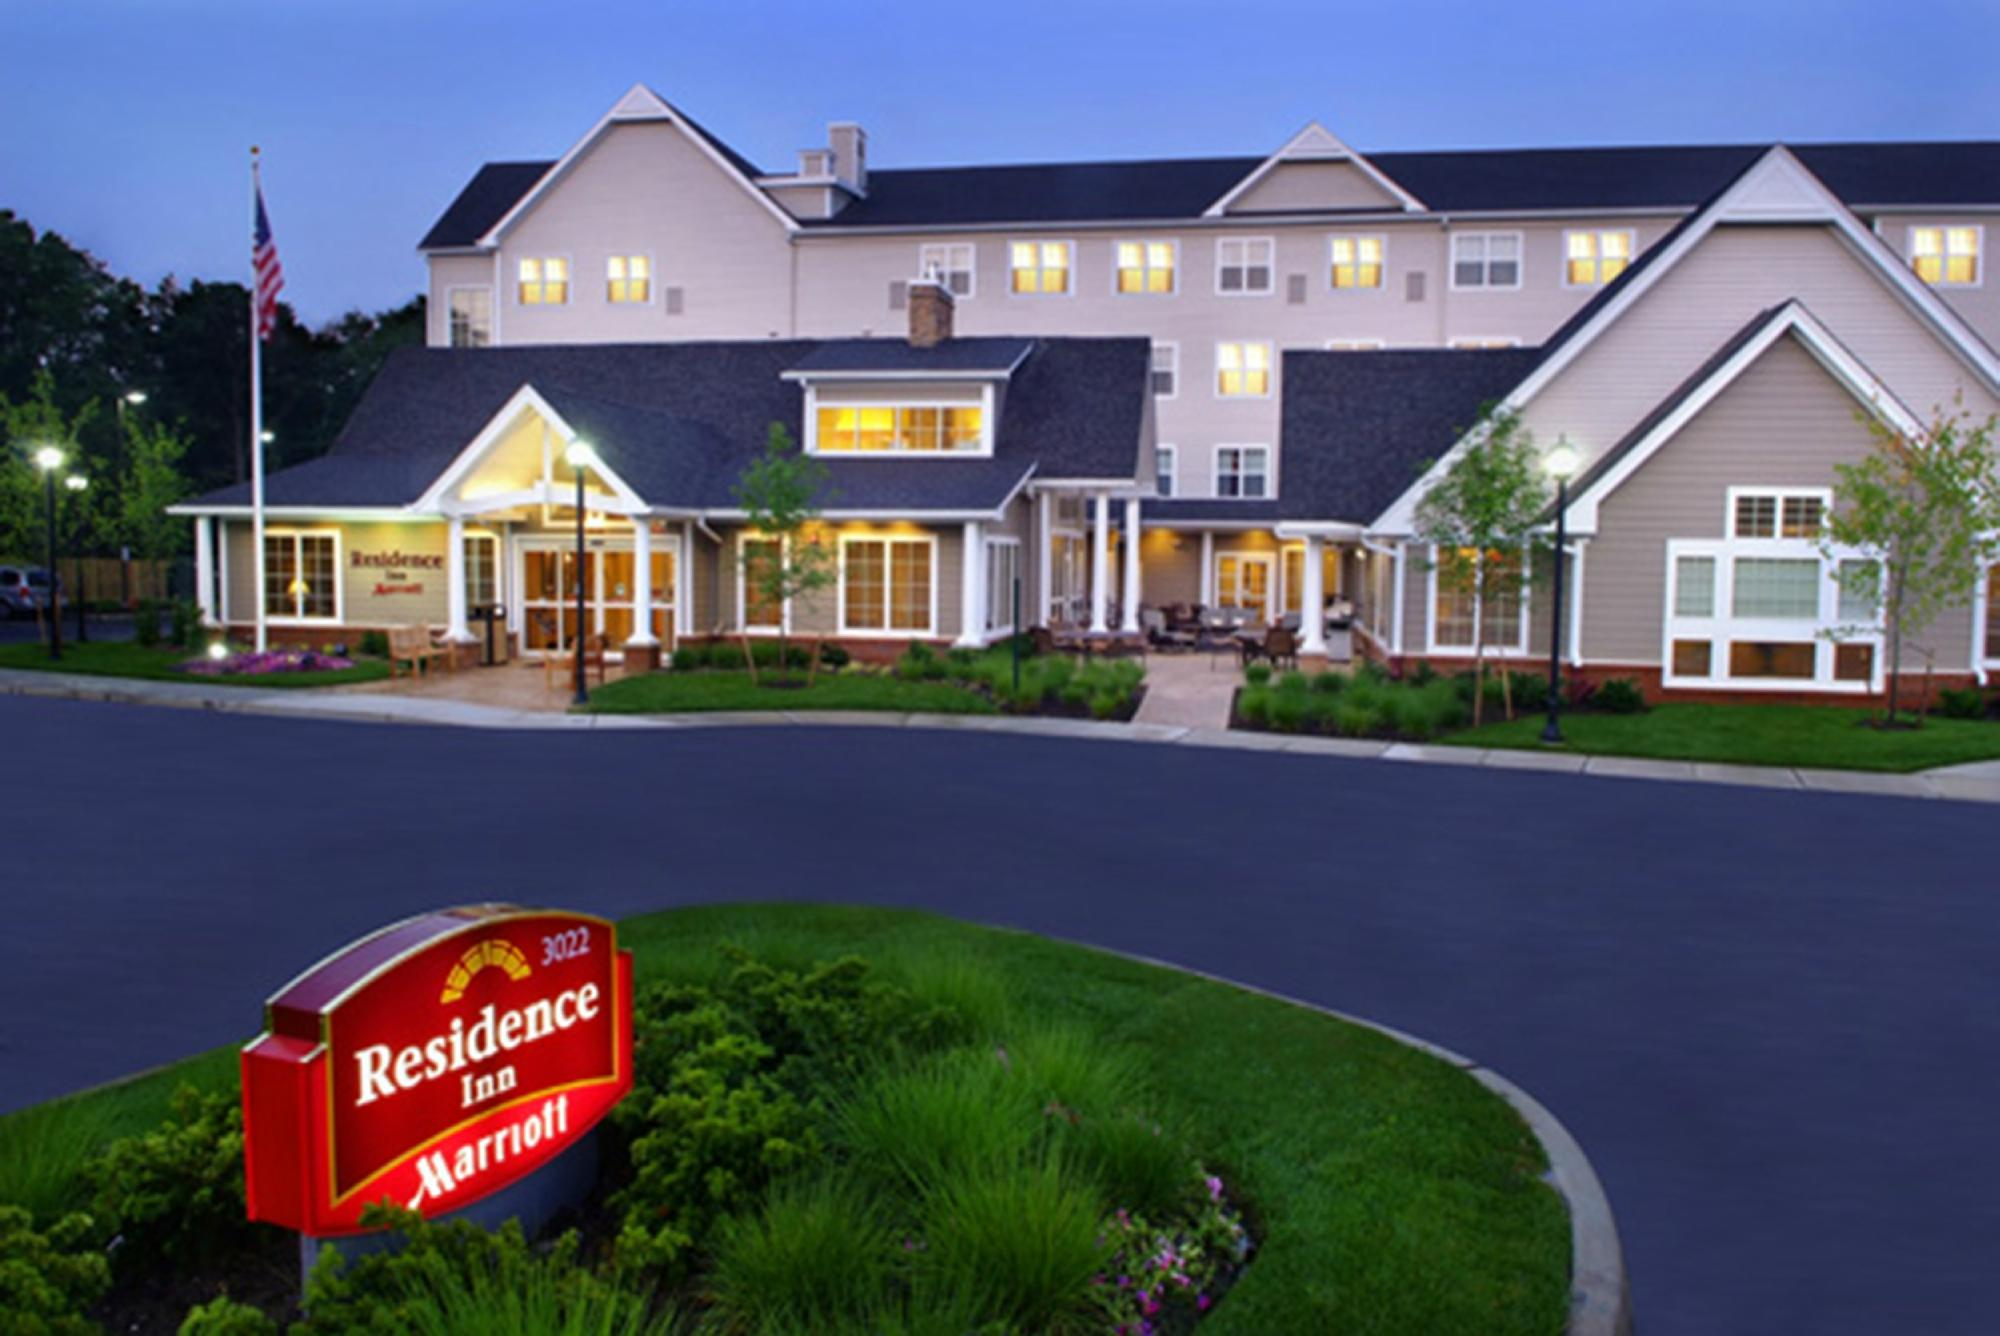 Residence Inn Atlantic City Airport Egg Harbor Township